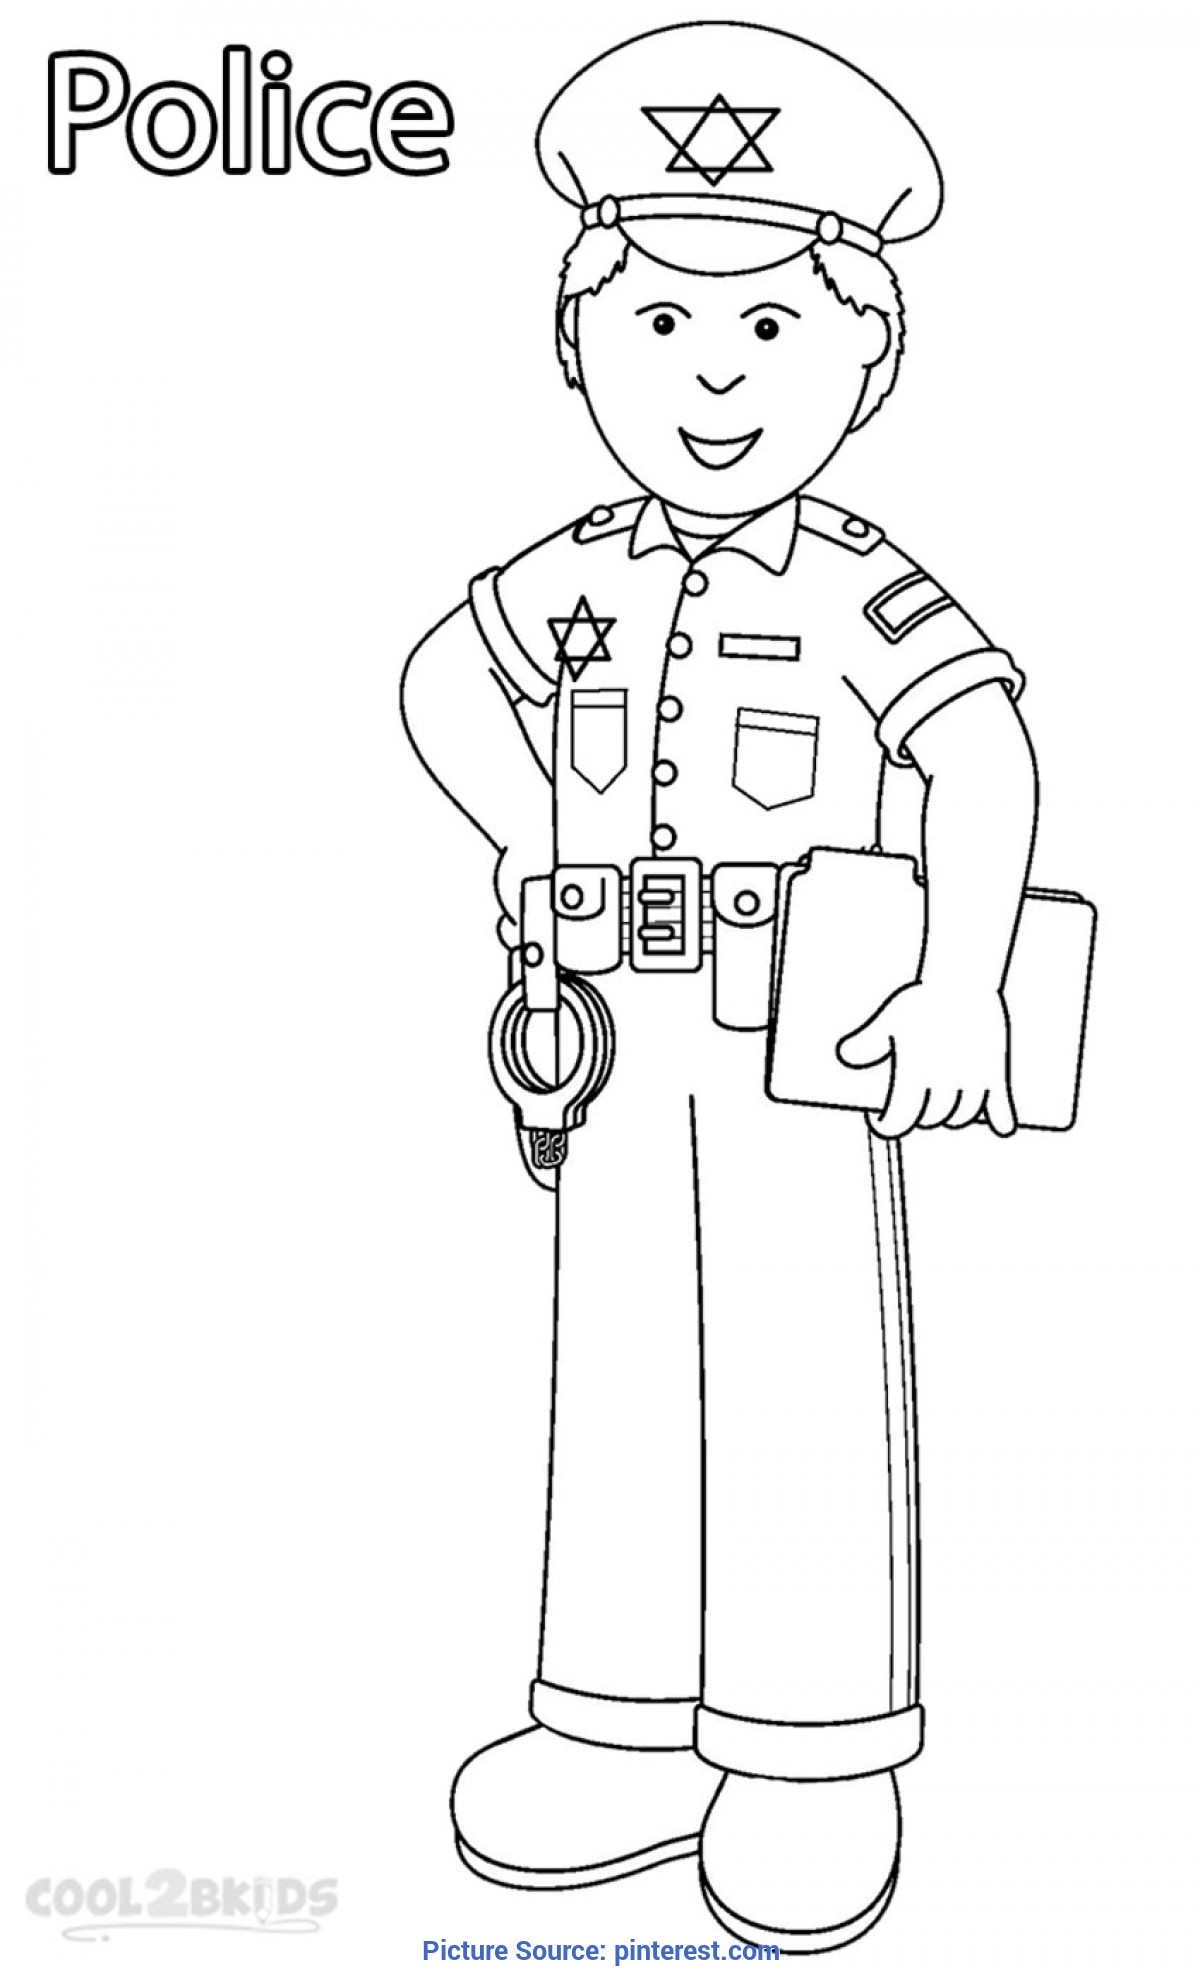 Top Printable Images Of Community Workers Printable Community Helper Coloring Pages For Kids | Cool2Bkid